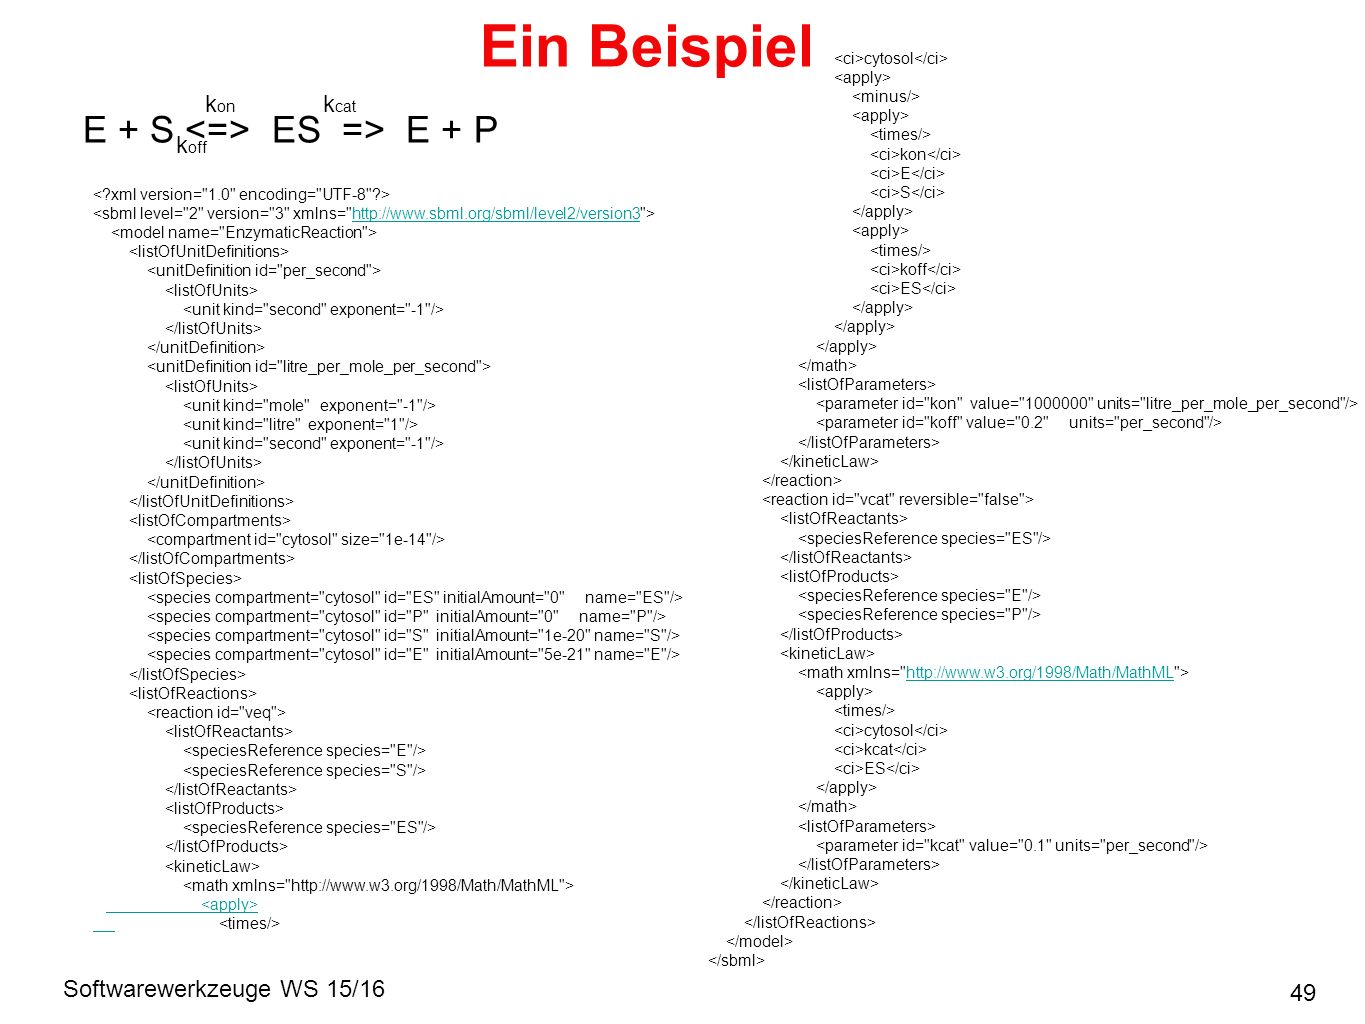 Softwarewerkzeuge WS 15/16 Ein Beispiel 49 E + S ES => E + P k on k off k cat http://www.sbml.org/sbml/level2/version3 cytosol kon E S koff ES http://www.w3.org/1998/Math/MathML cytosol kcat ES